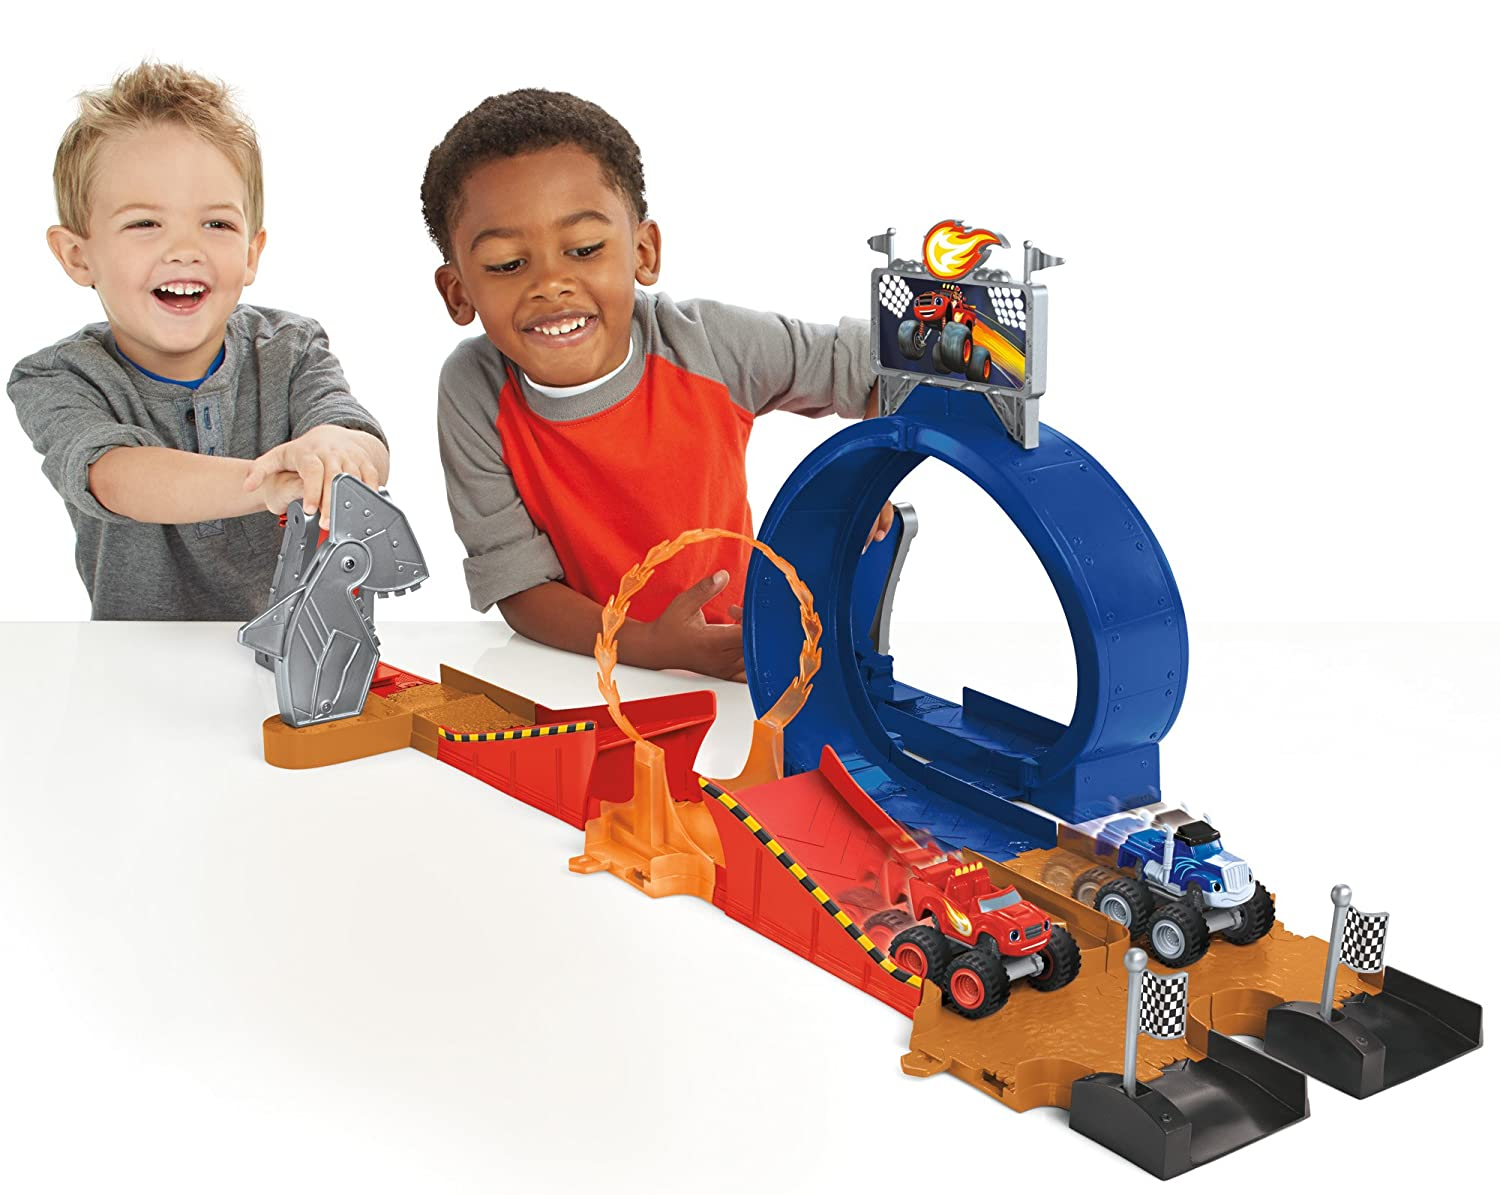 Fisher-Price Nickelodeon Blaze and the Monster Machines Monster Dome Playset